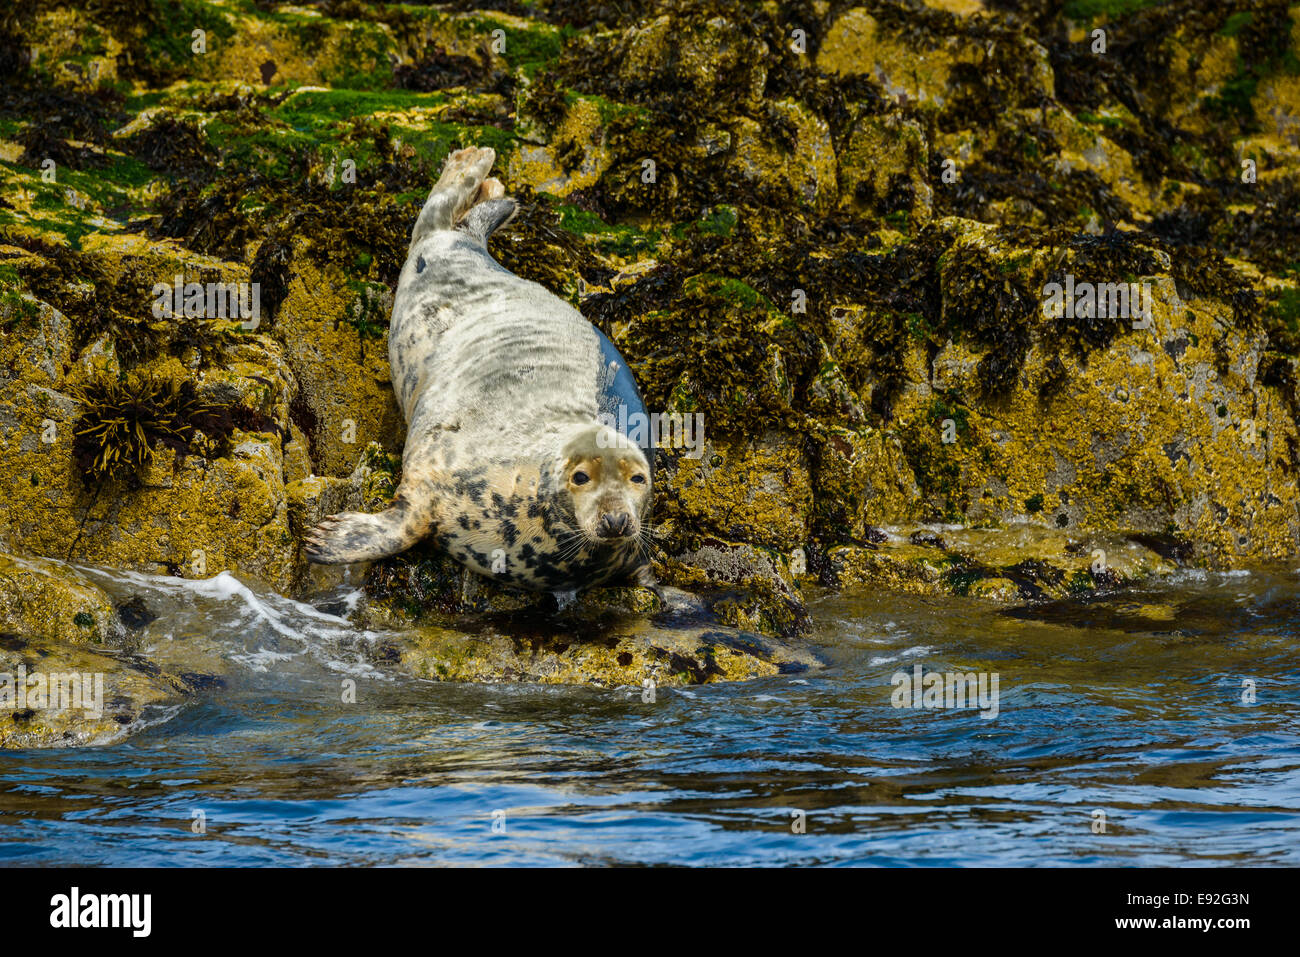 A young, molting moulting Atlantic Grey Seal Gray (Halichoerus grypus) on rocks at the water's edge, looks at camera. Stock Photo